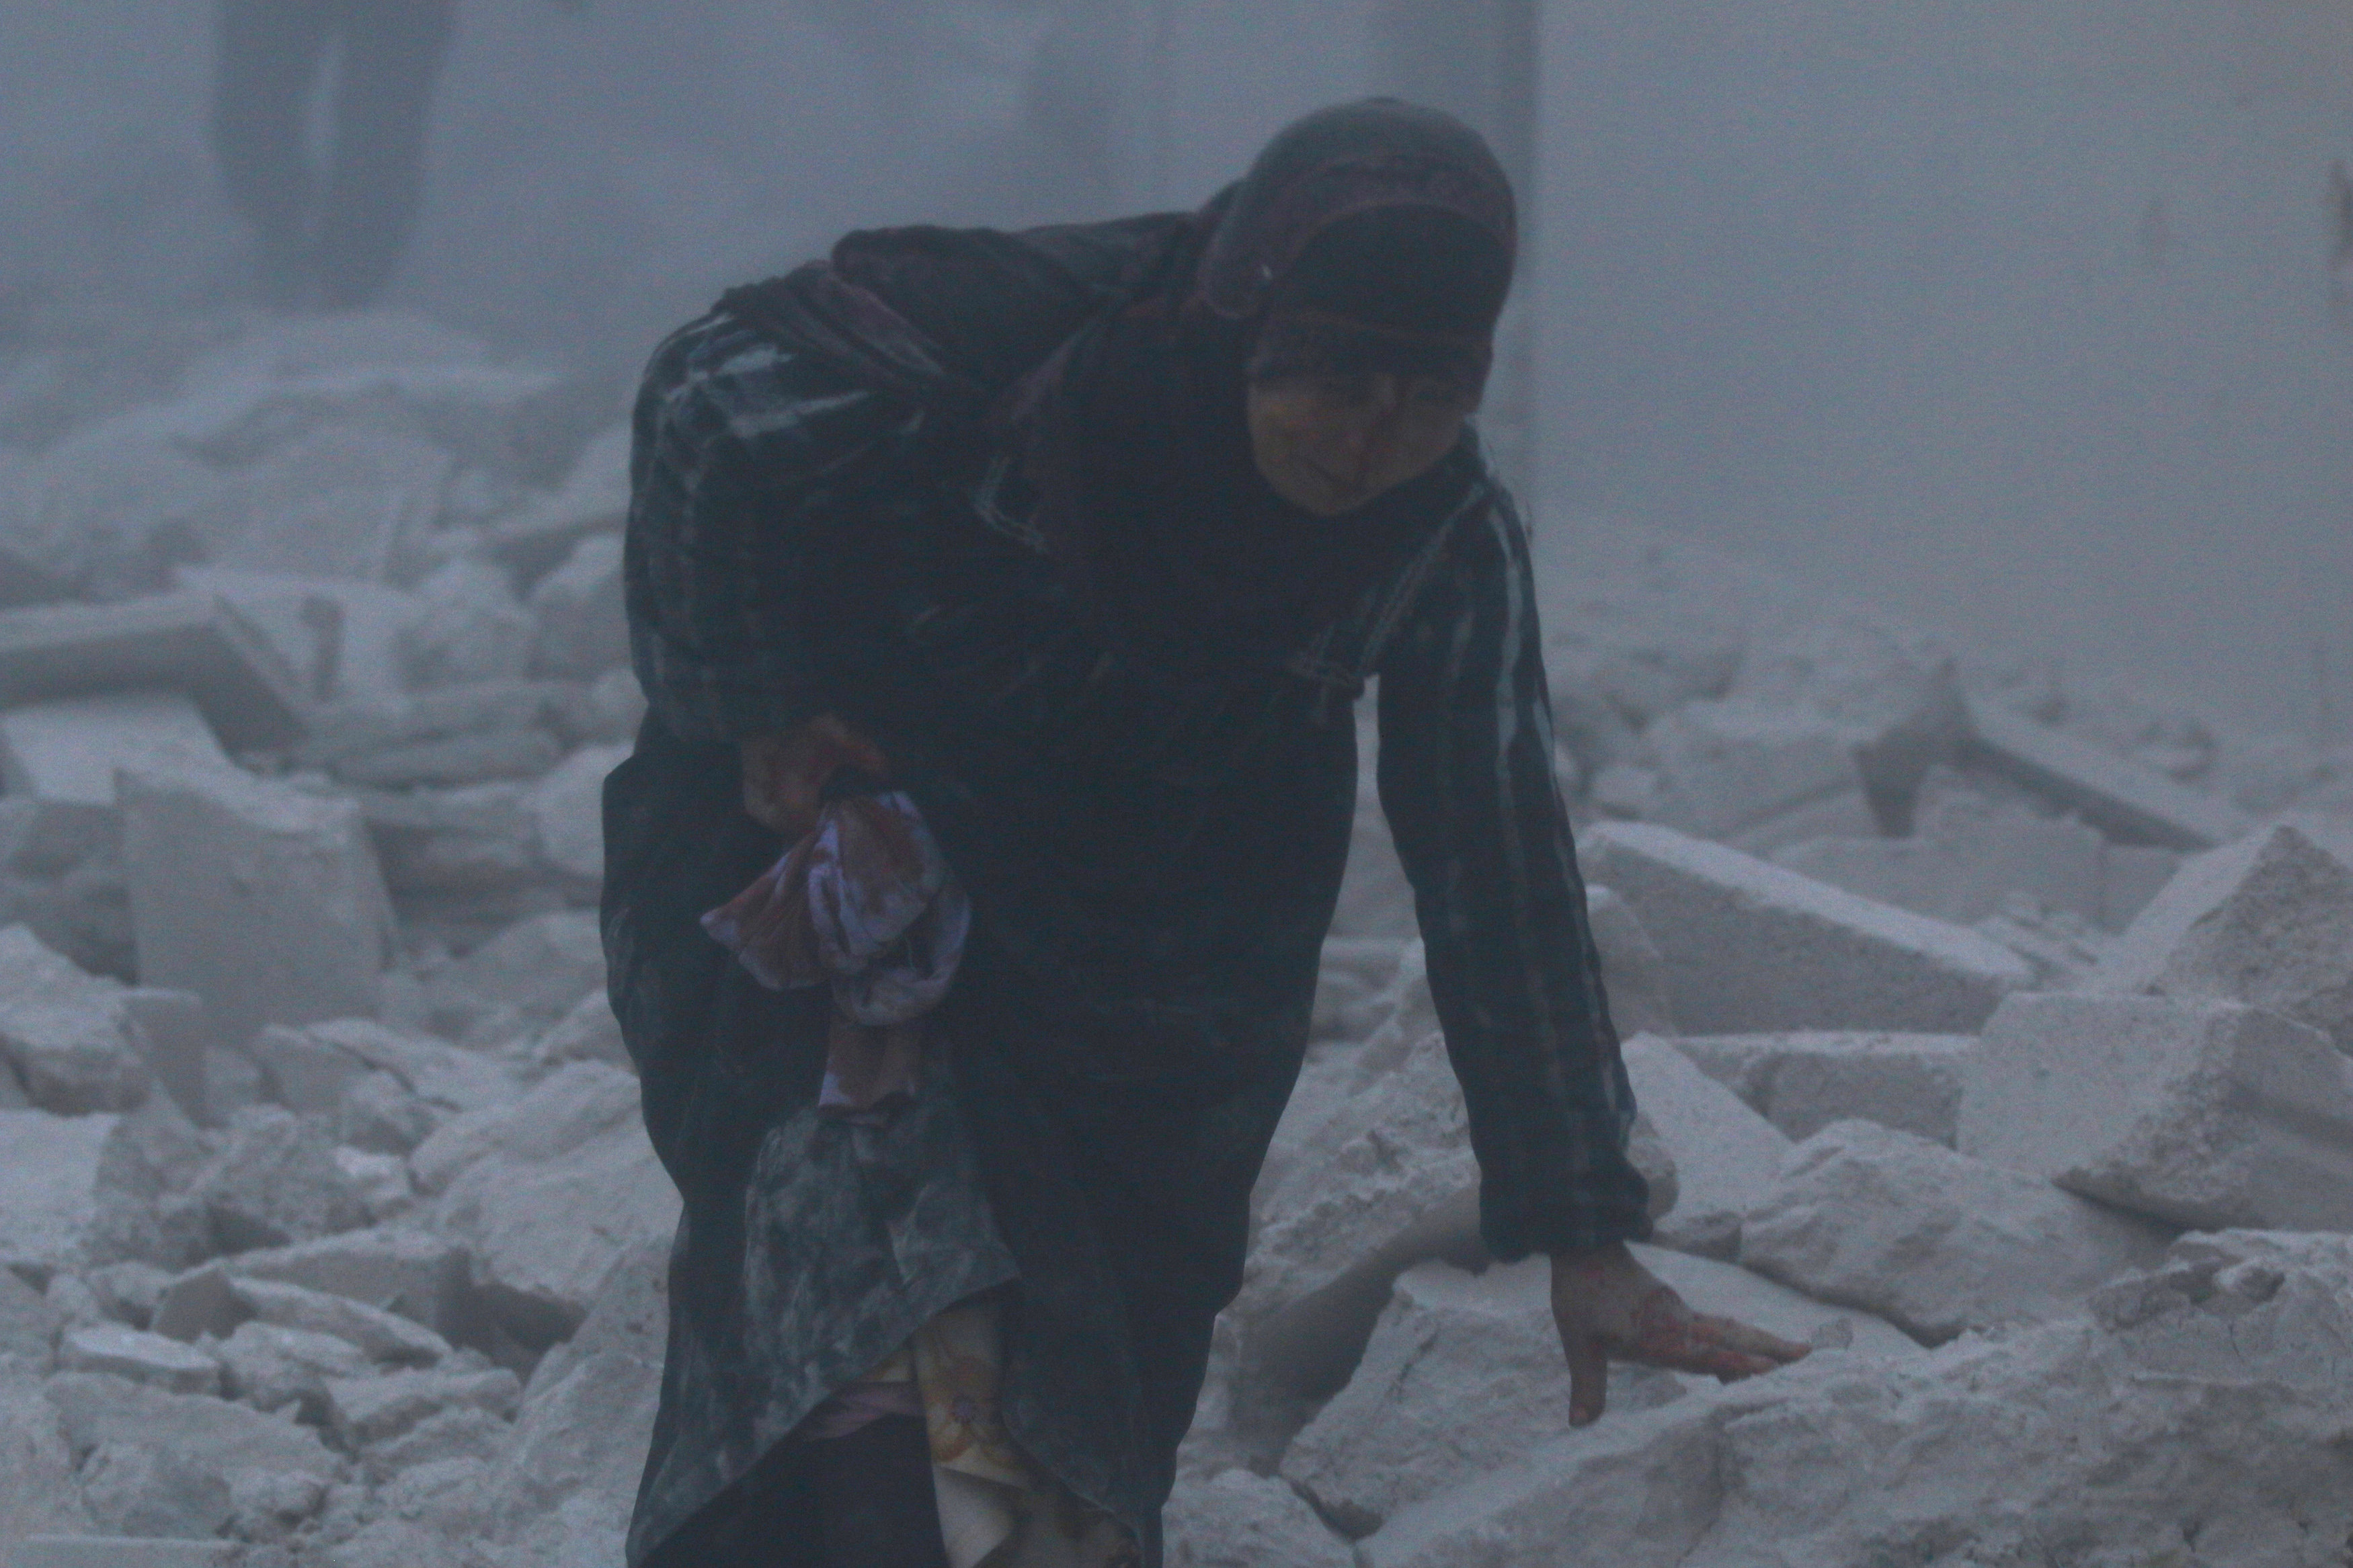 An injured woman walks at a site hit by an airstrike in the rebel-held al-Ansari neighbourhood of Aleppo, Syria